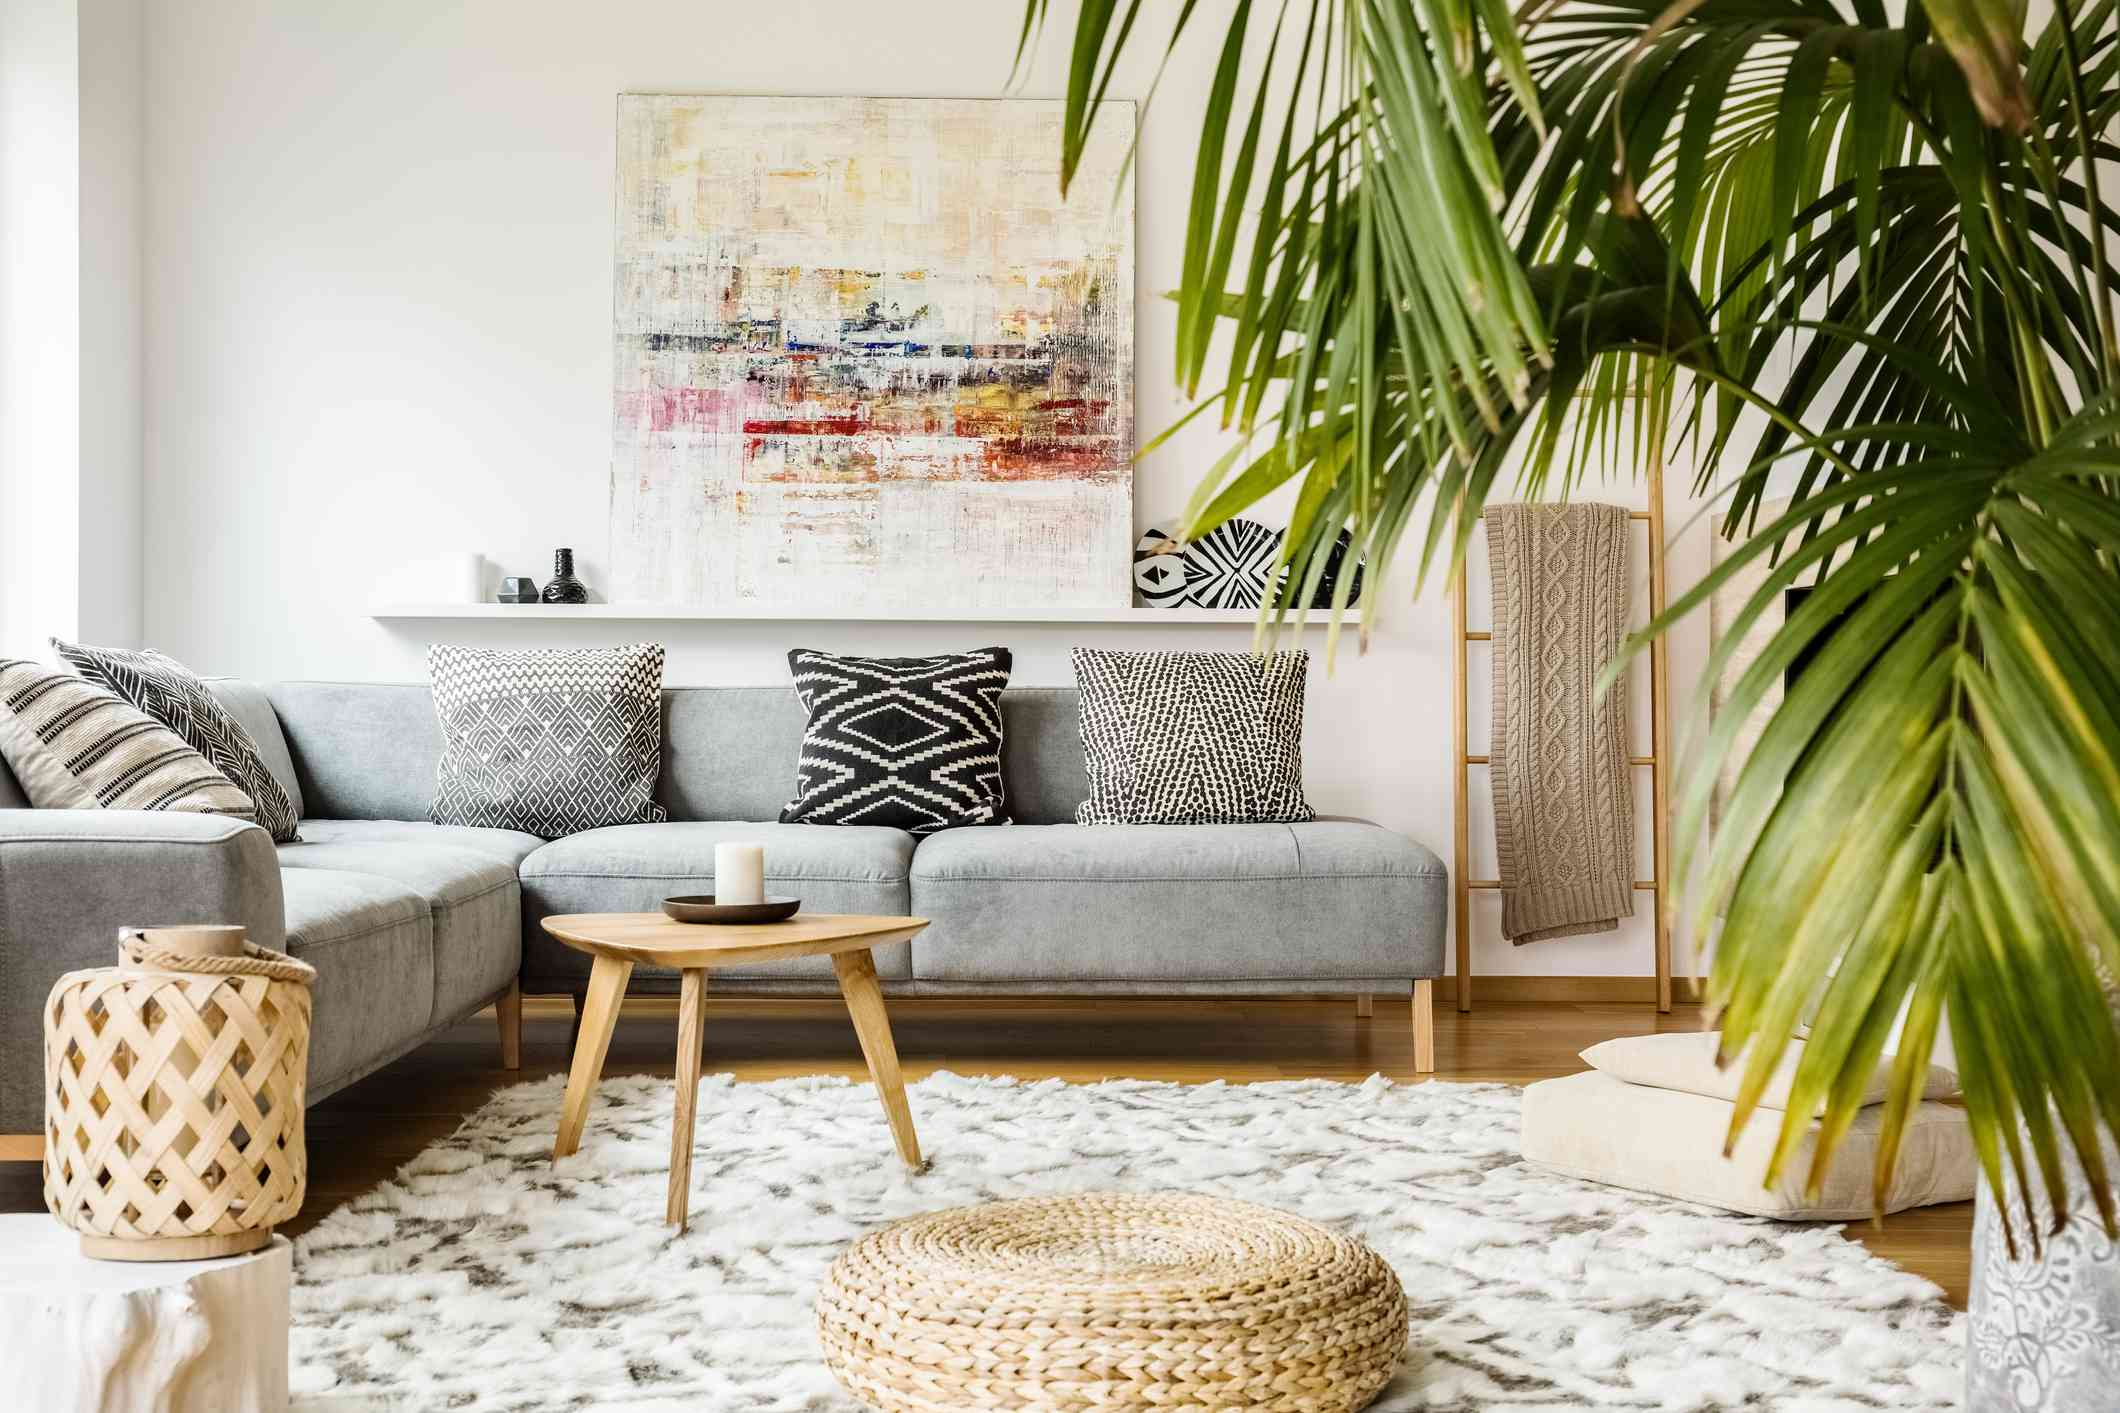 Tall indoor palm tree growing in living room